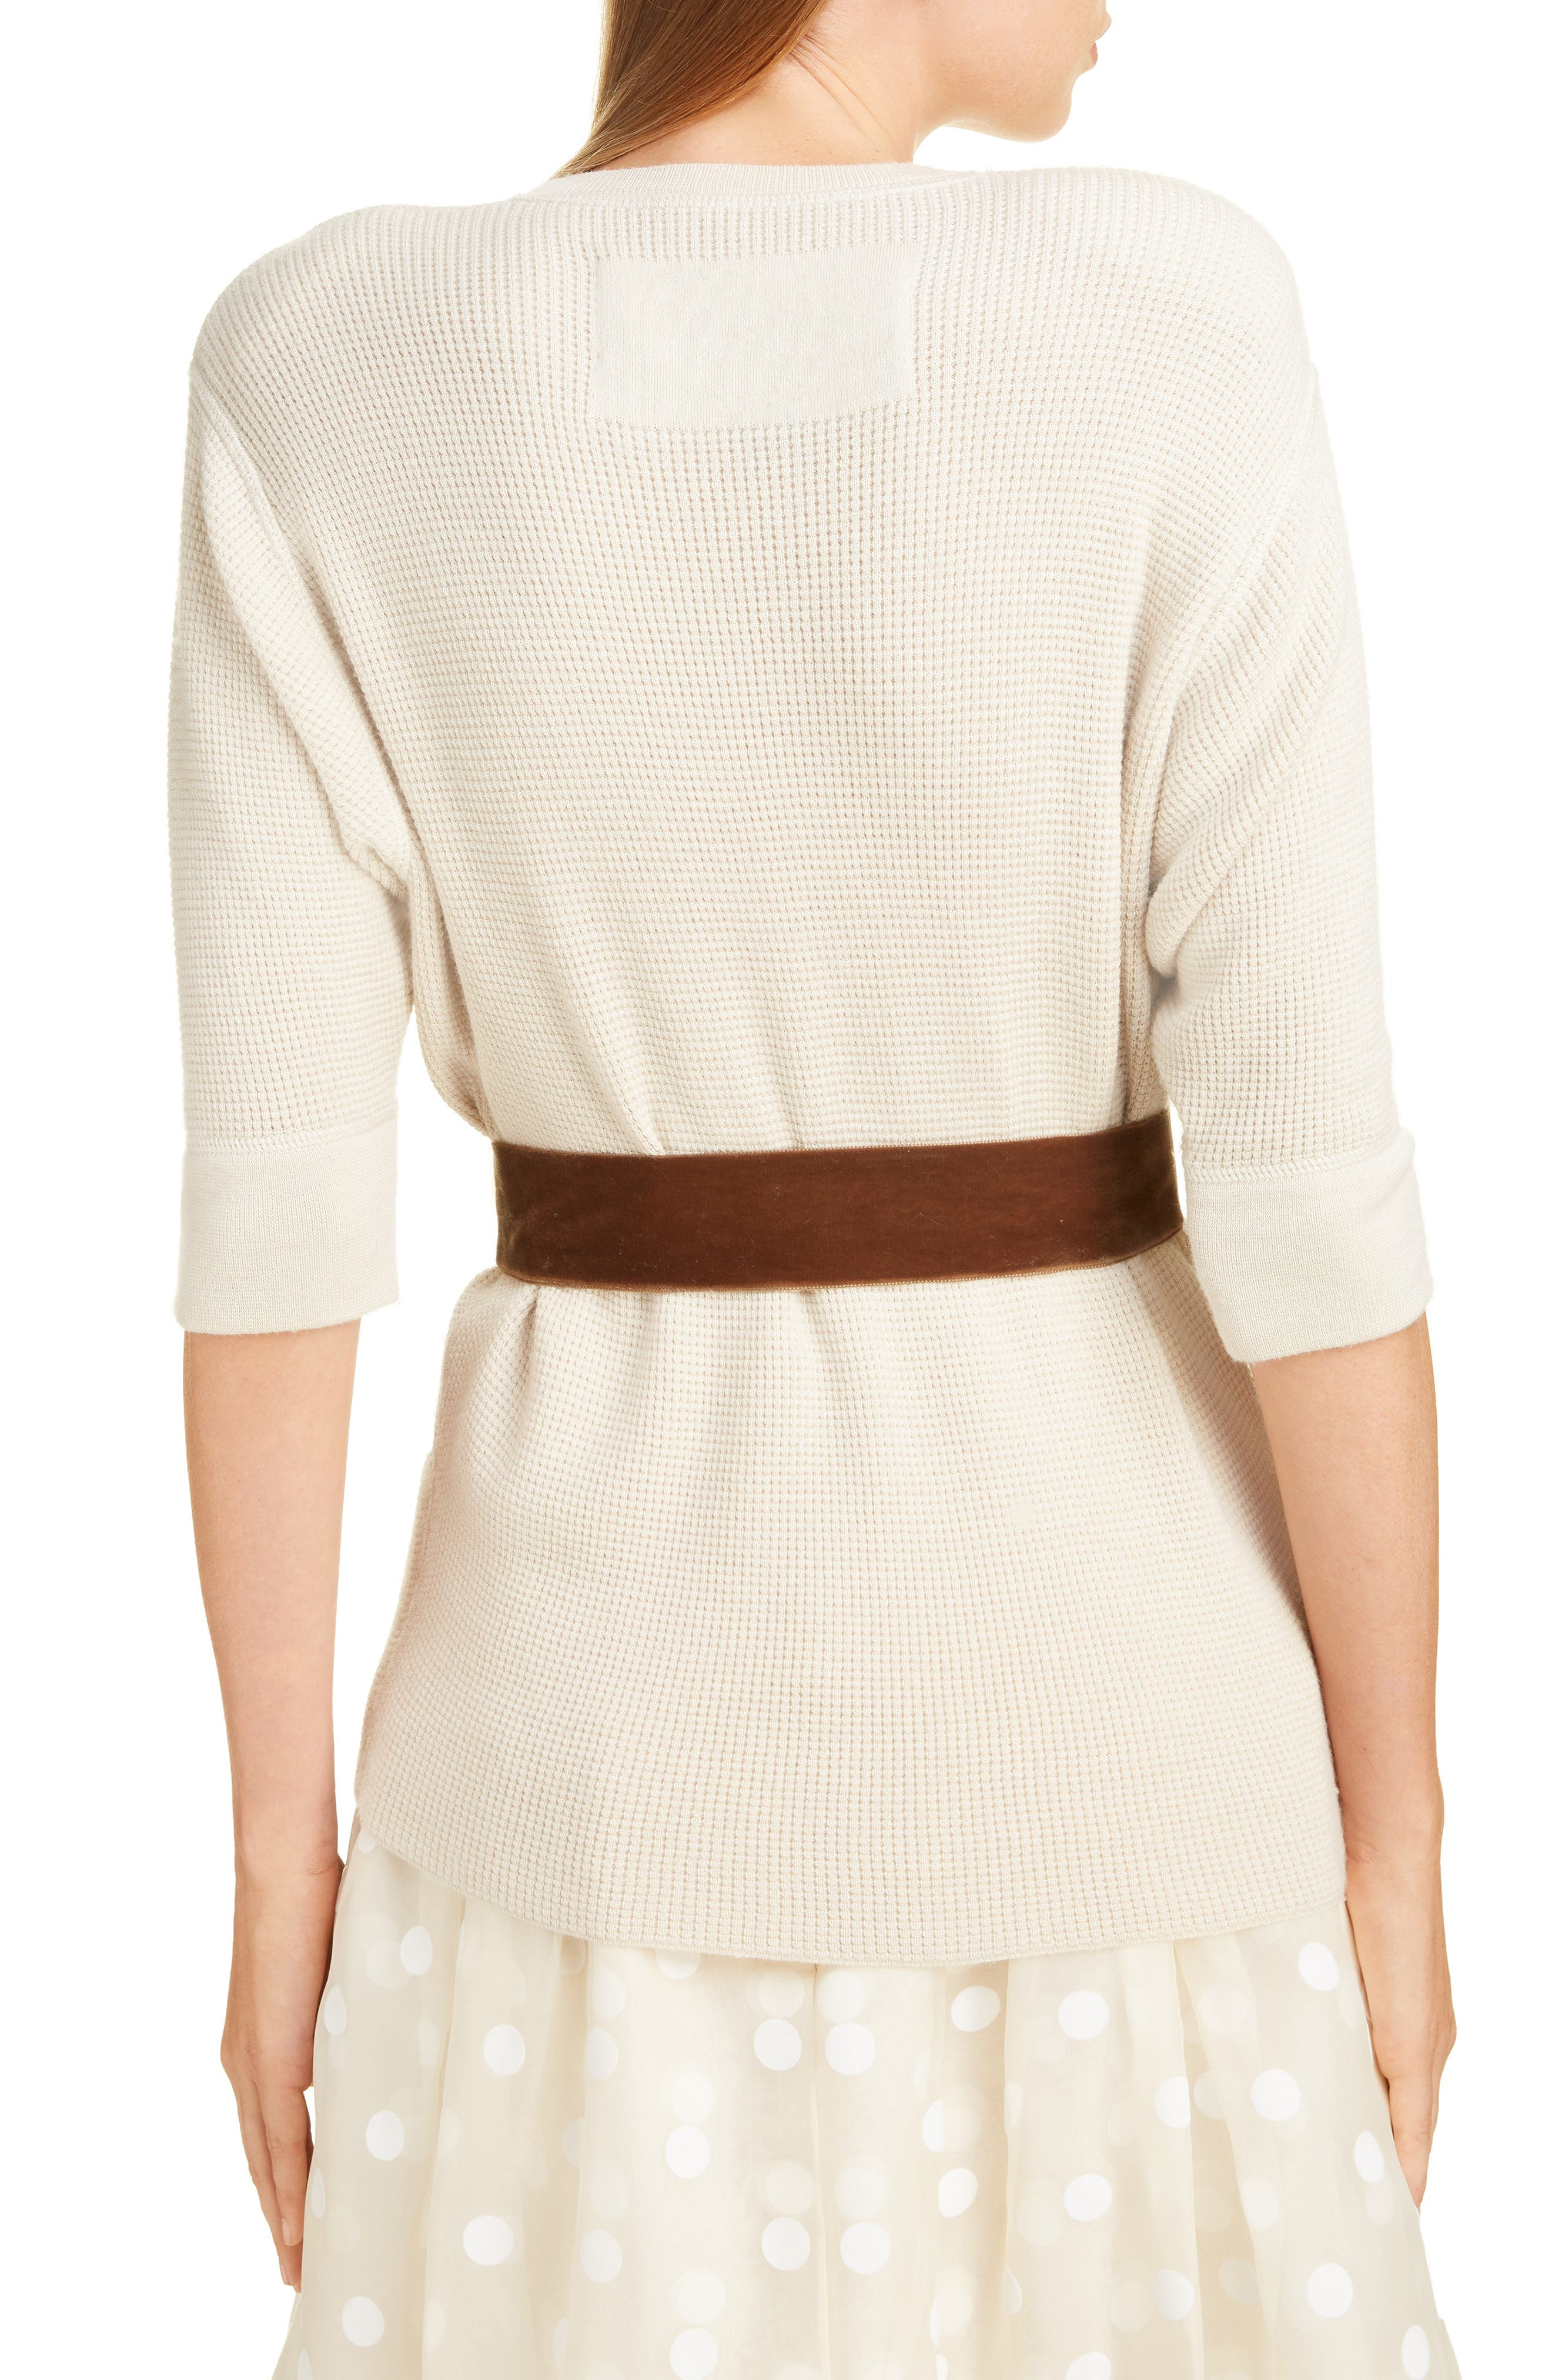 Bow Detail Cashmere & Wool Blend Thermal Sweater,                             Alternate thumbnail 2, color,                             IVORY